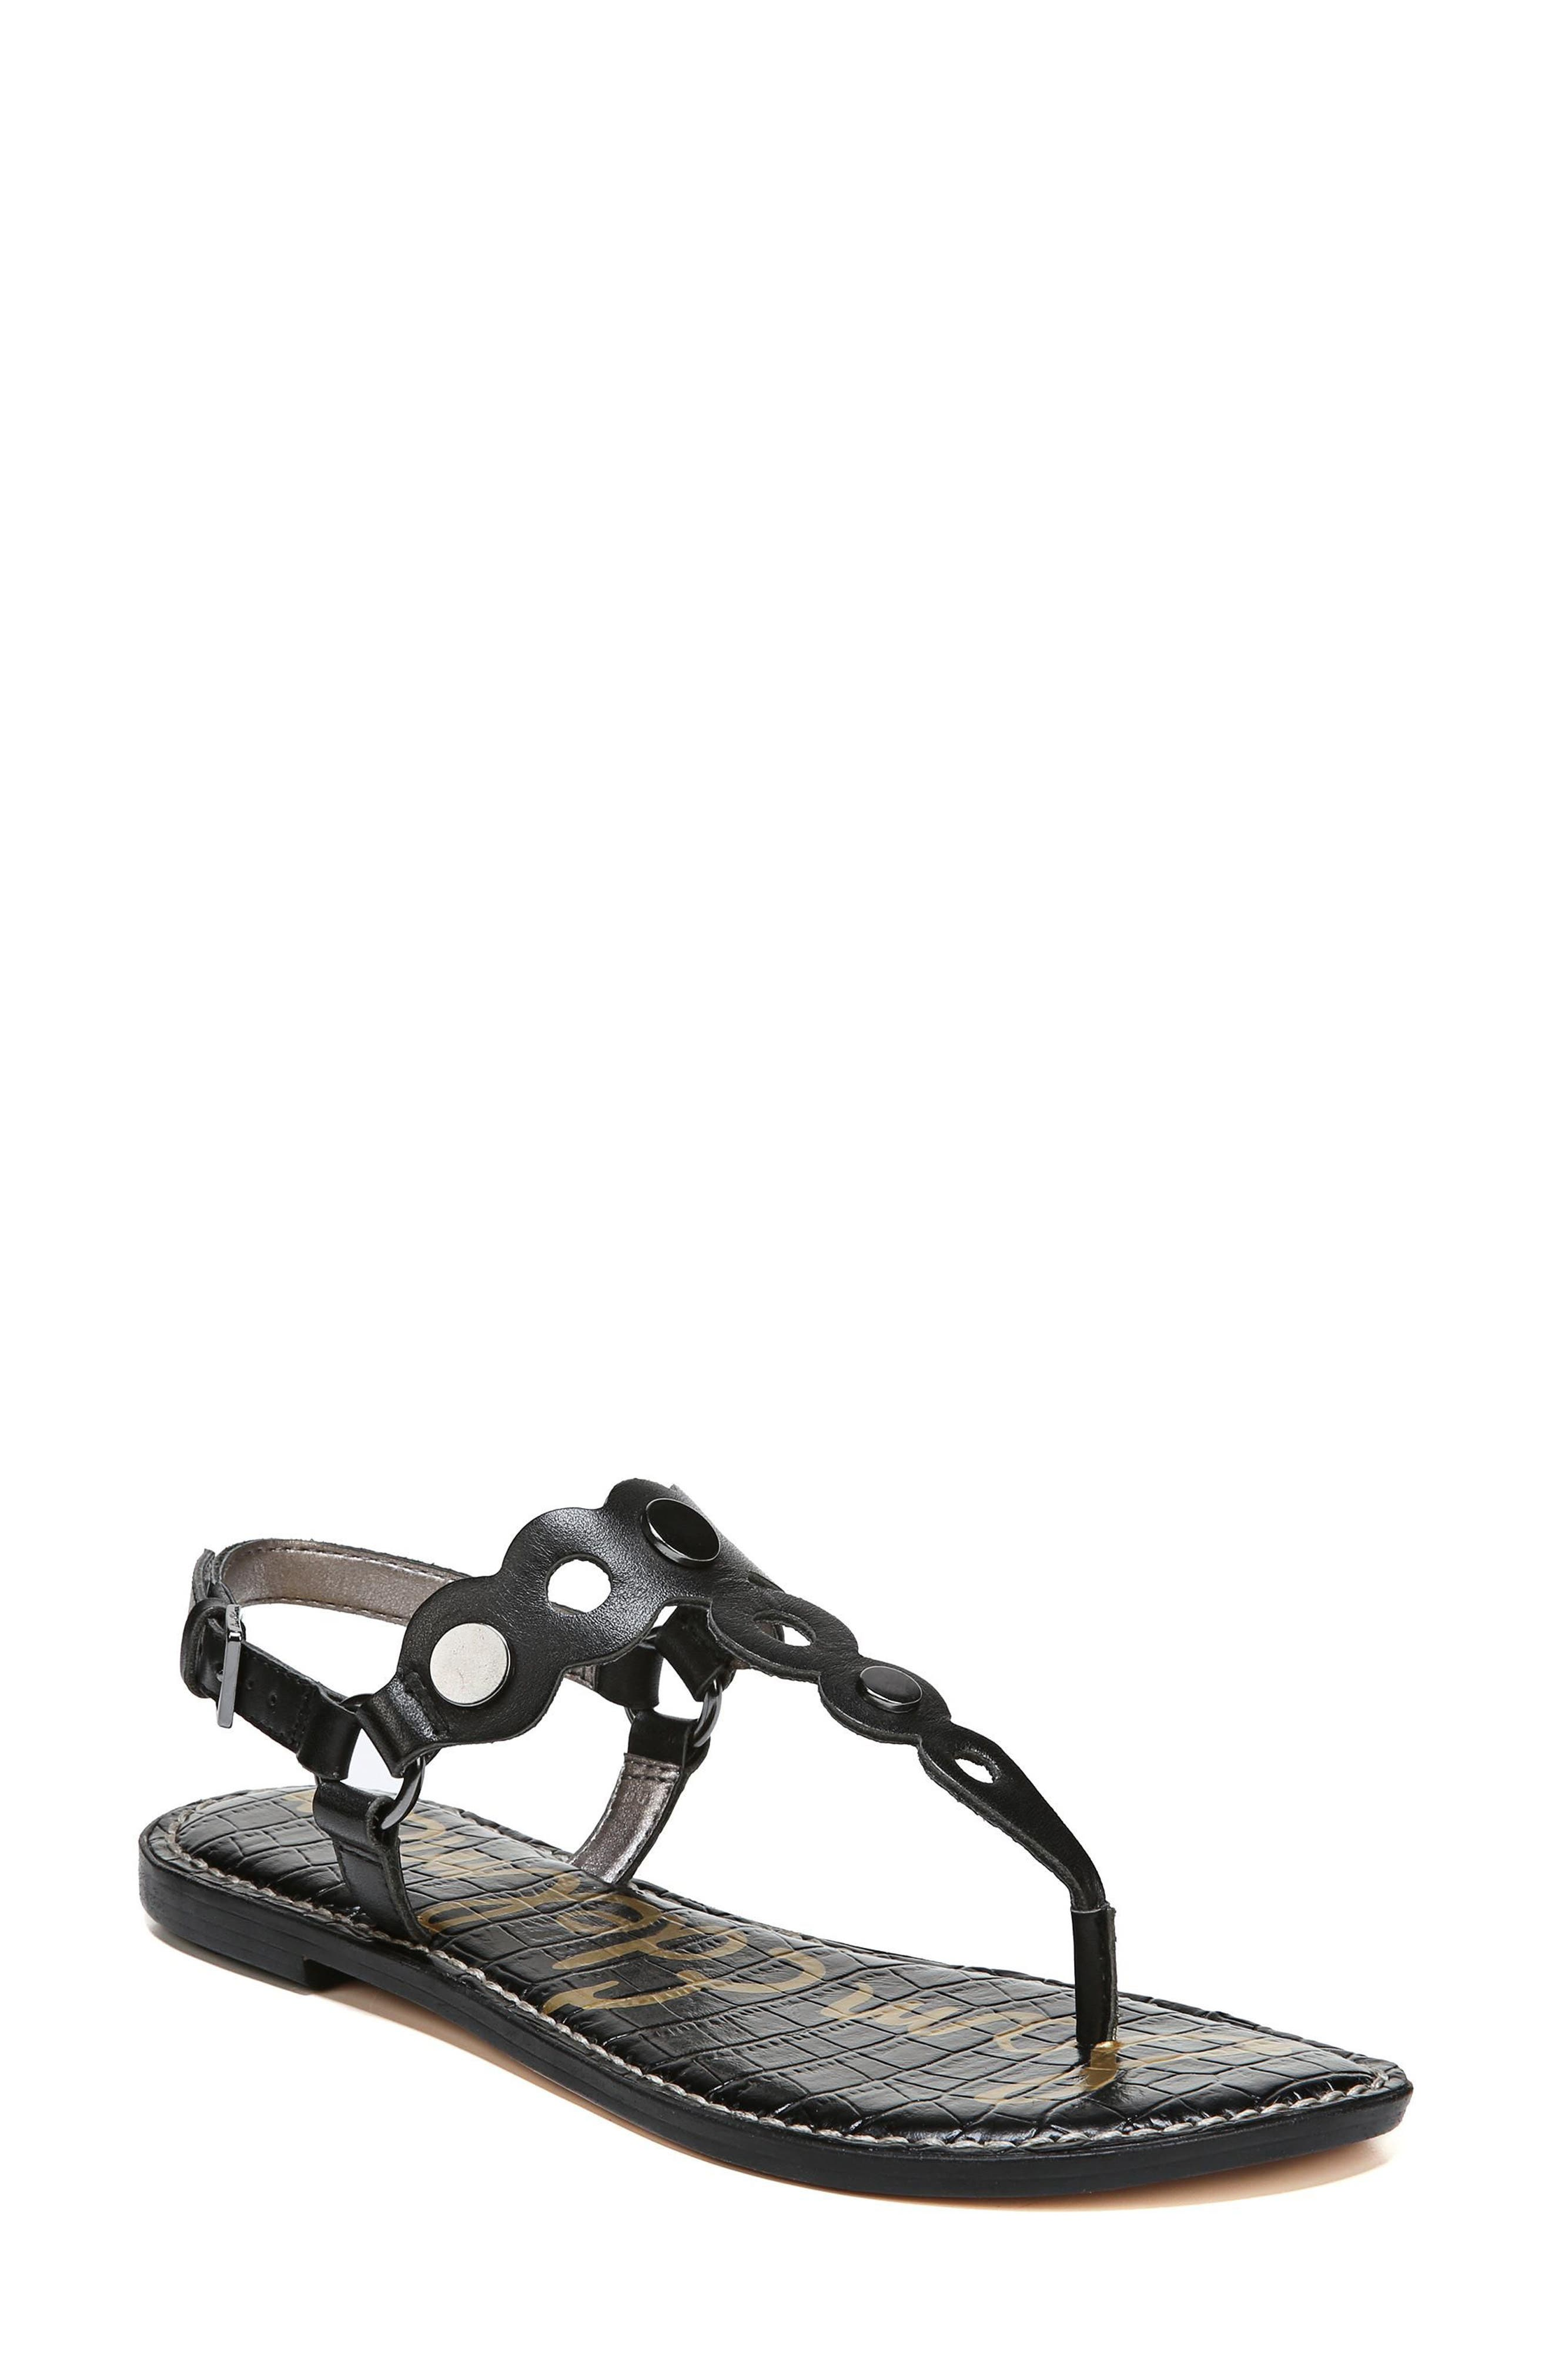 Gilly T-Strap Sandal,                         Main,                         color,